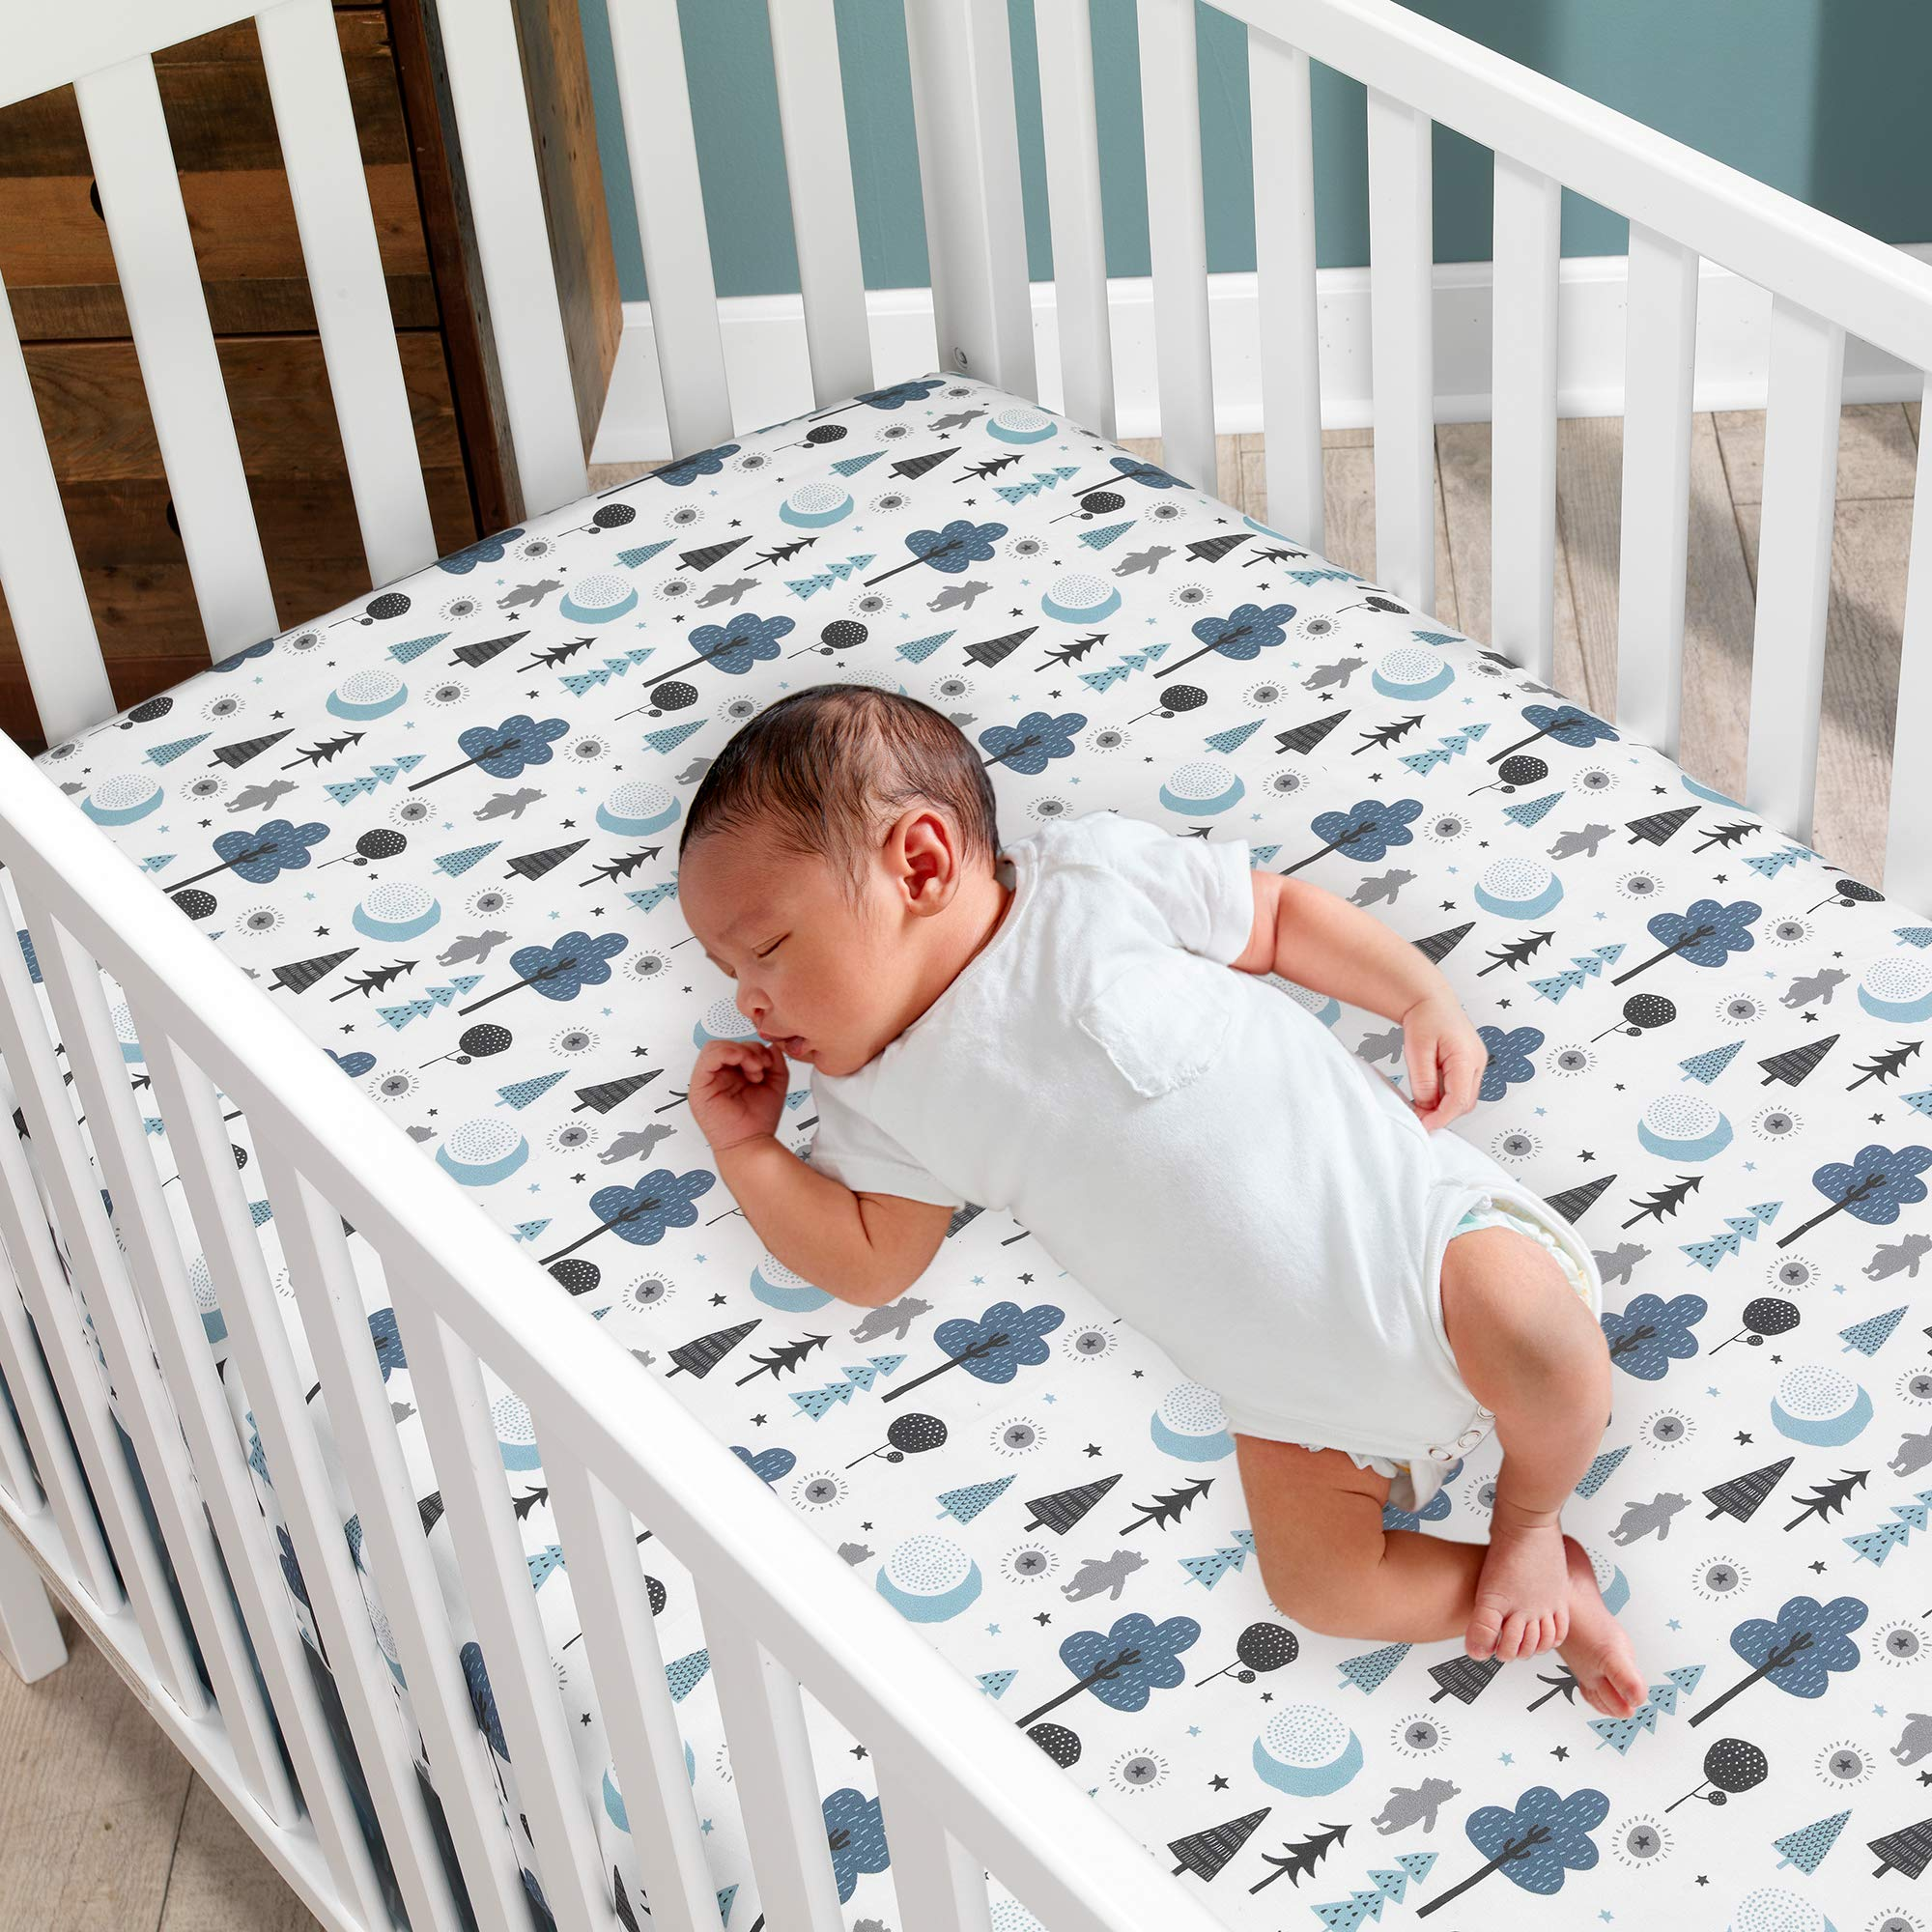 Lambs & Ivy Forever Pooh 3Piece Baby Crib Bedding Set, Blue by Lambs & Ivy (Image #6)